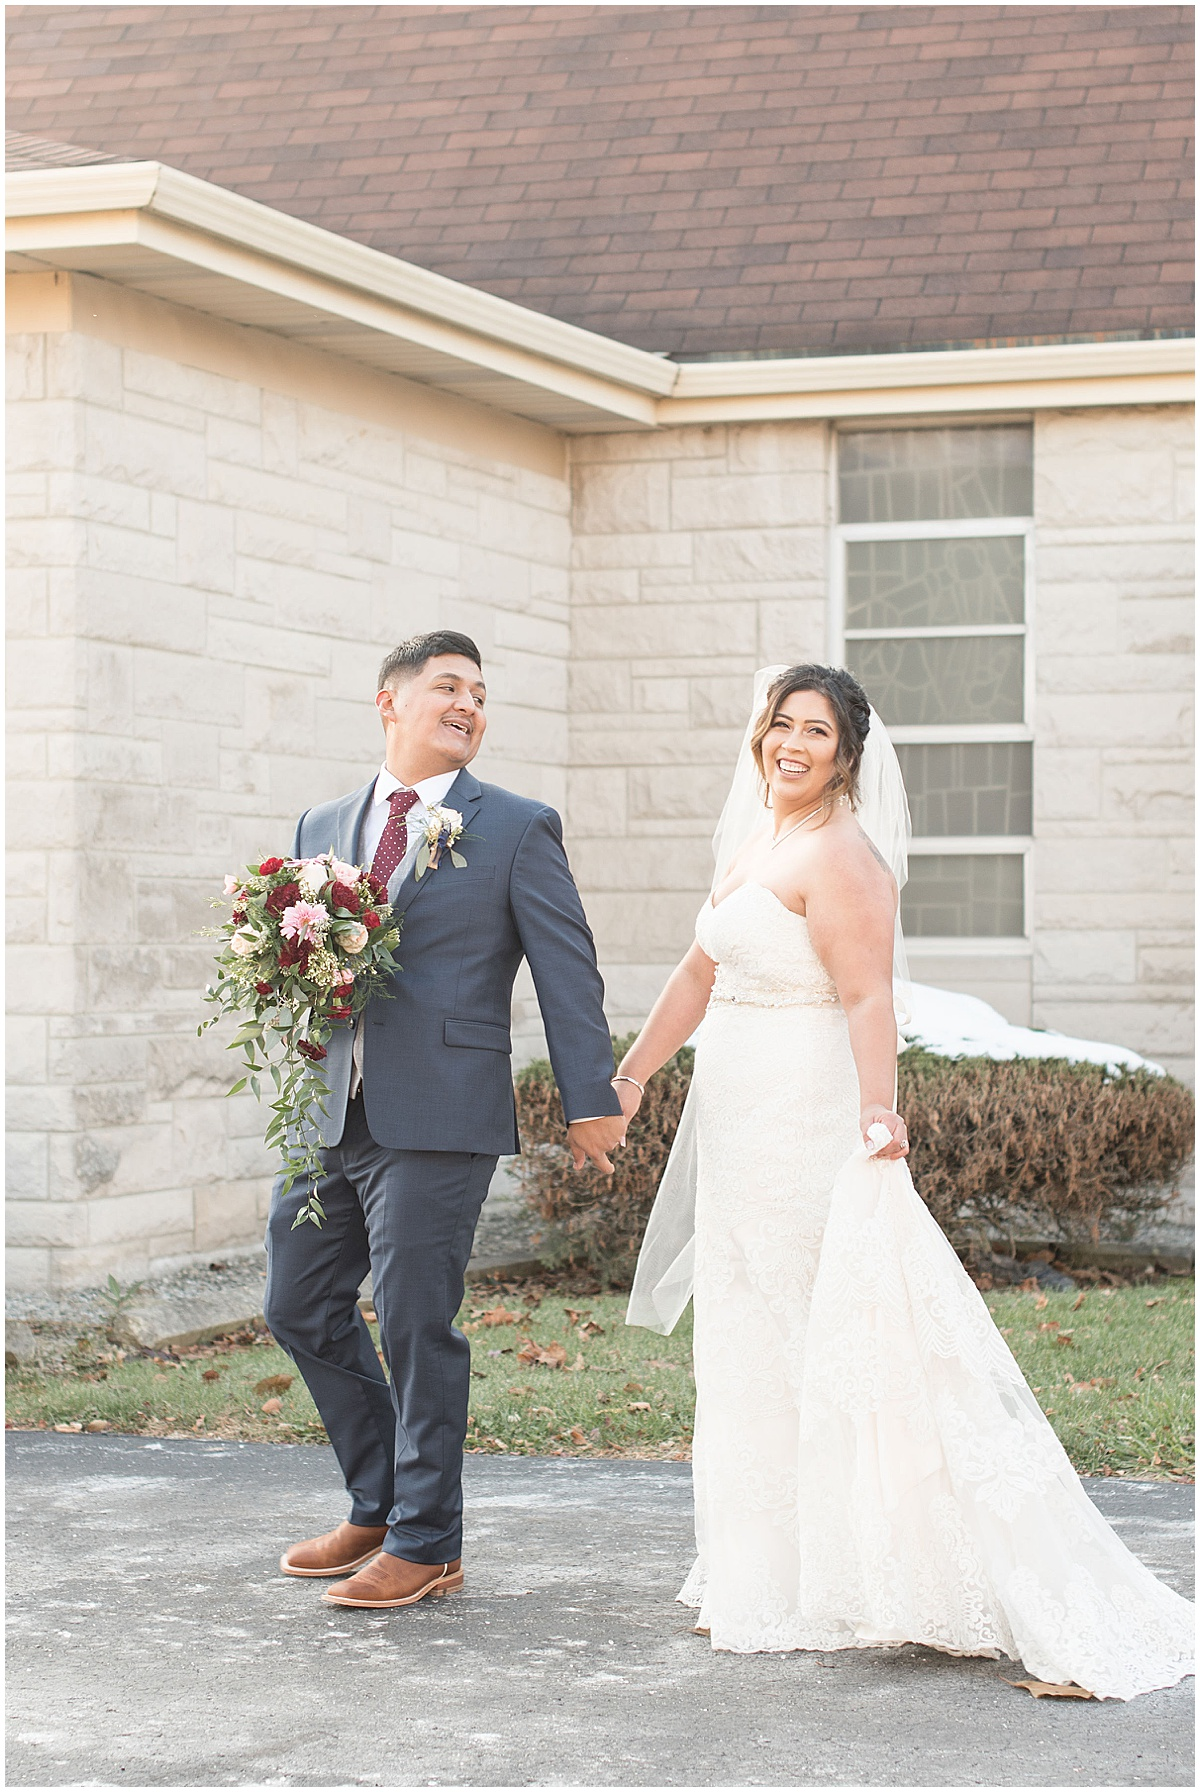 Wedding in Frankfort, Indiana photographed by Victoria Rayburn Photography